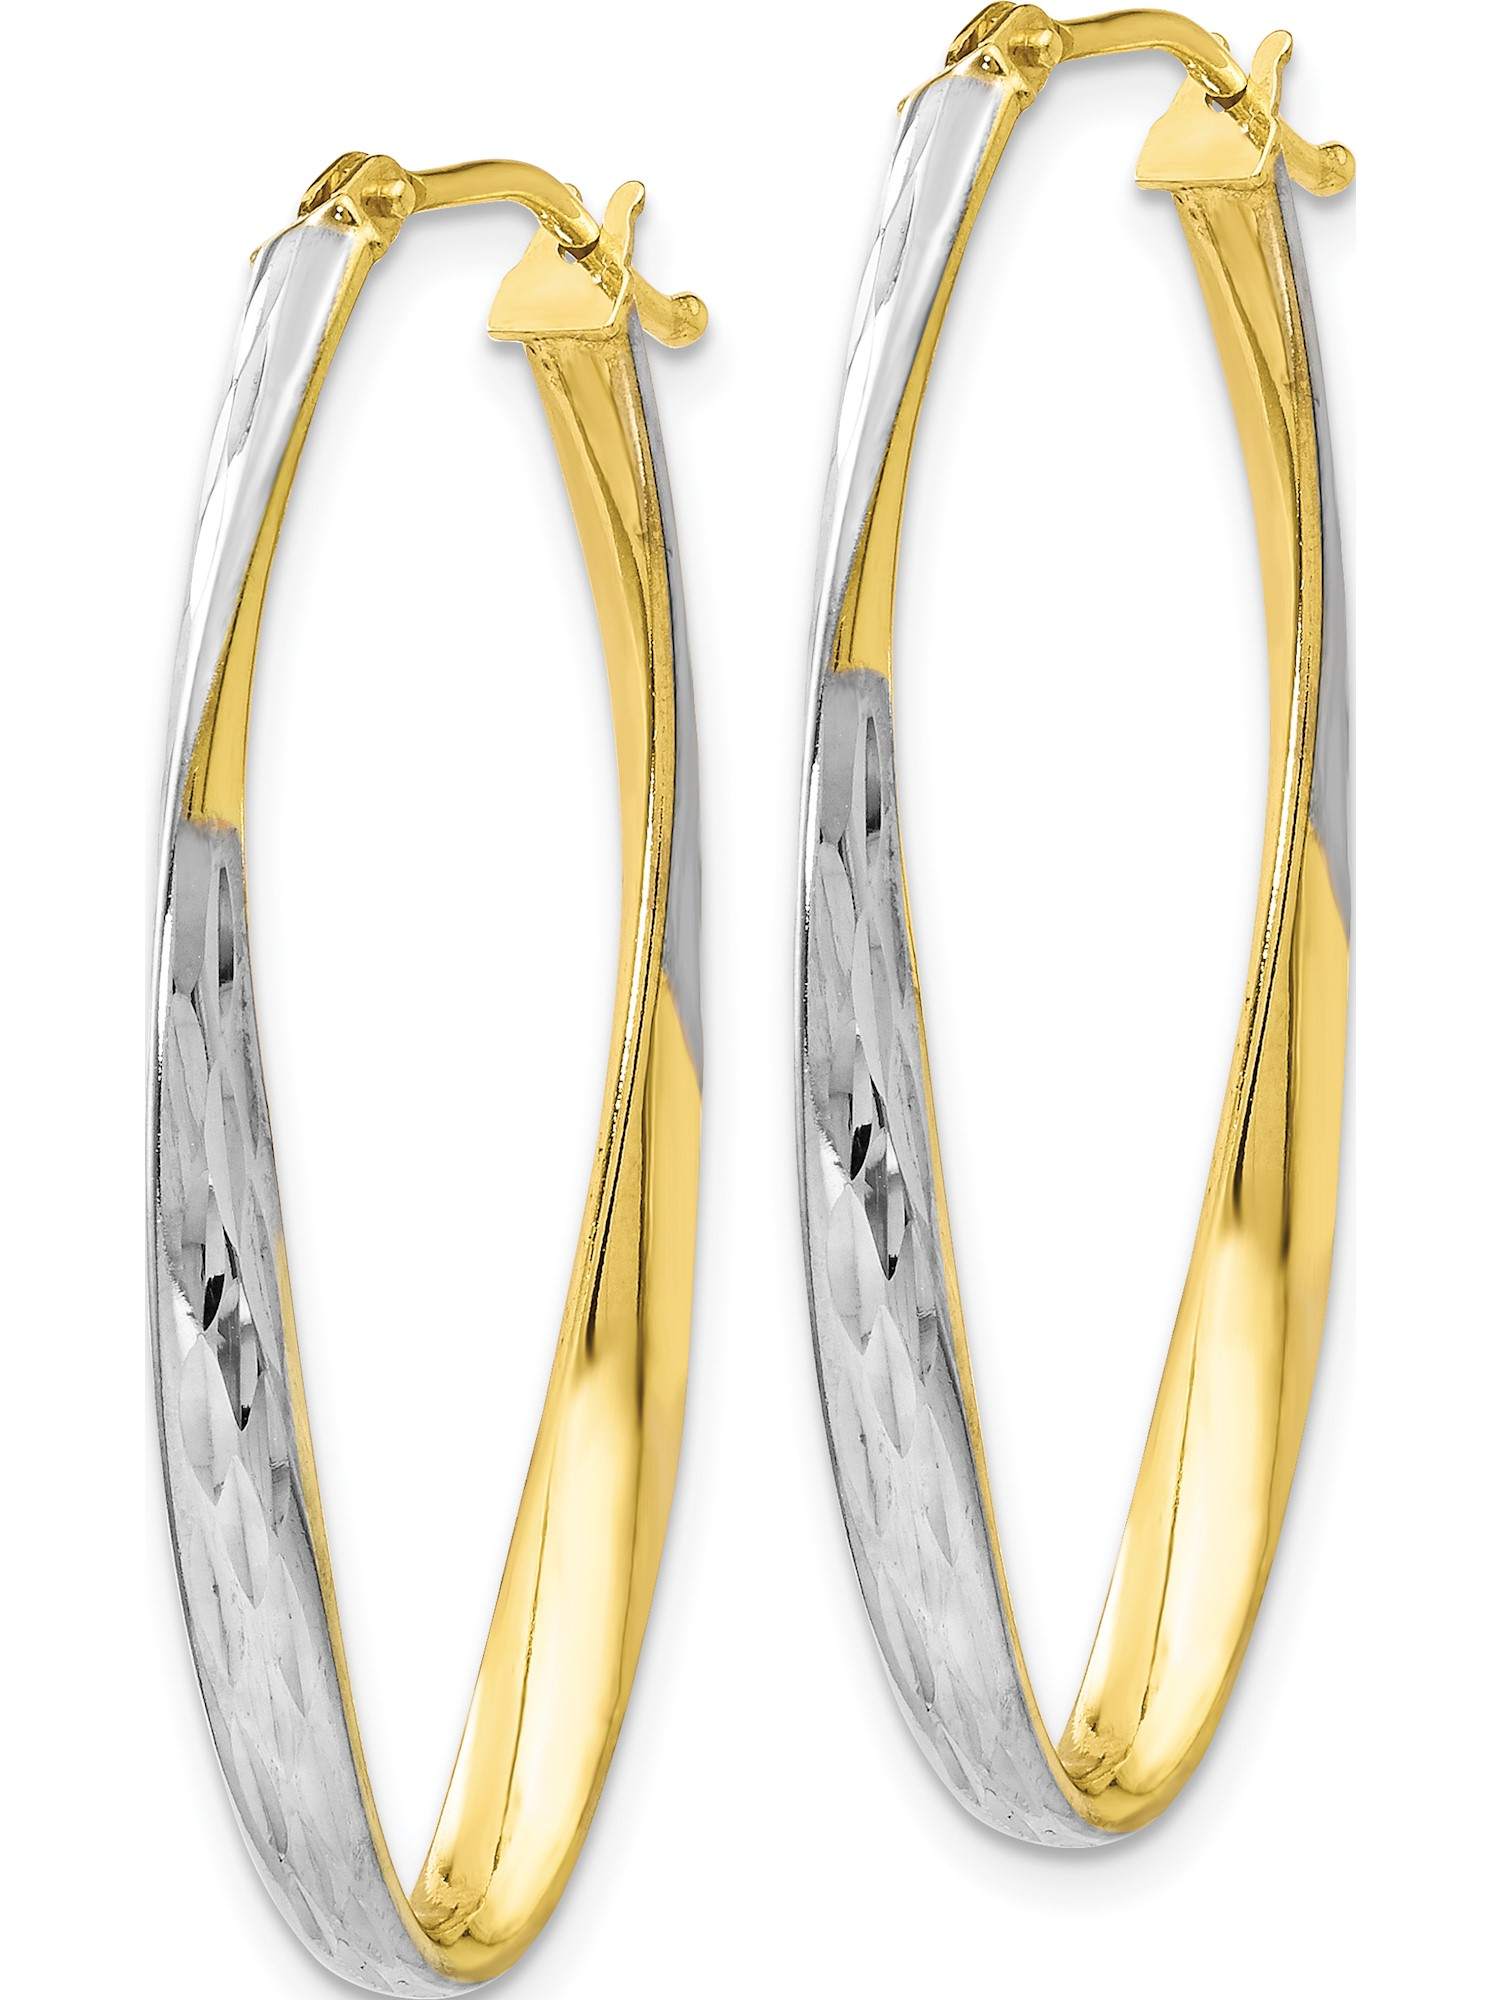 Perfect Jewelry Gift Leslies 10k Polished and D//C Oval Hinged Hoop Earrings